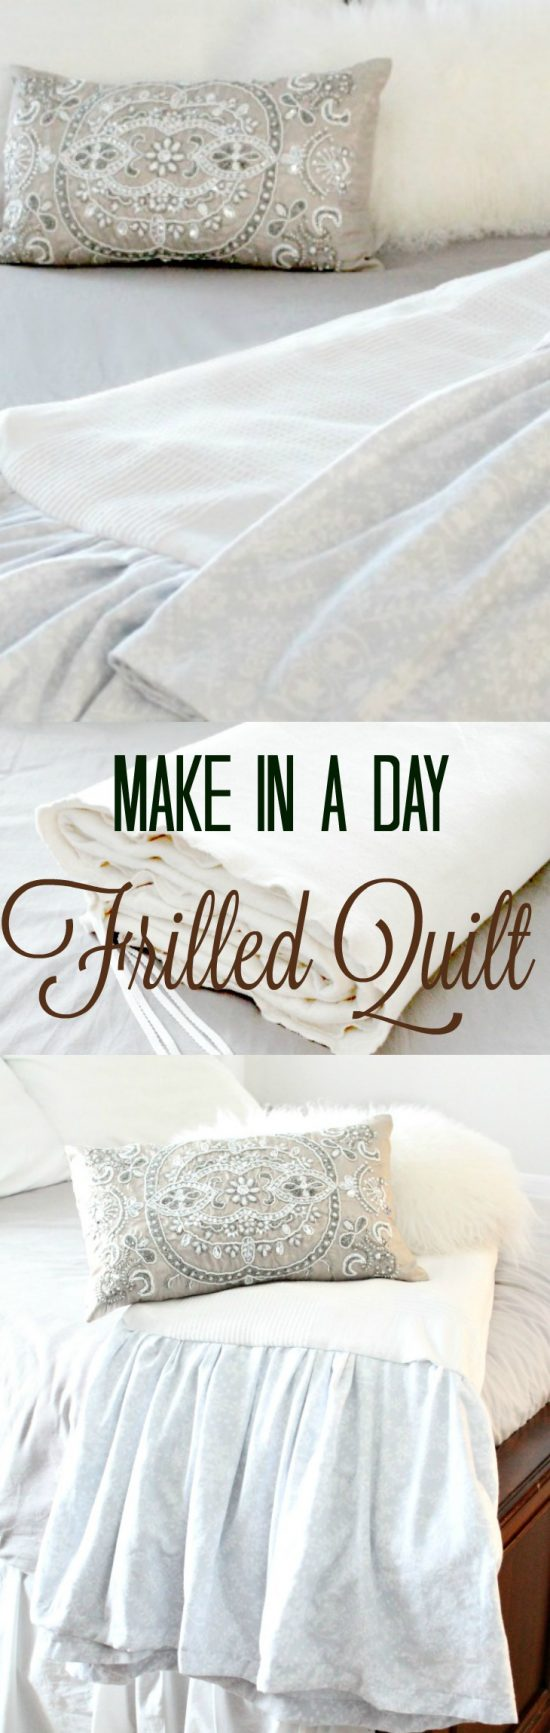 diy blanket, diy throw, diy comforter, ikea hacks, easy quilts to make in a day,